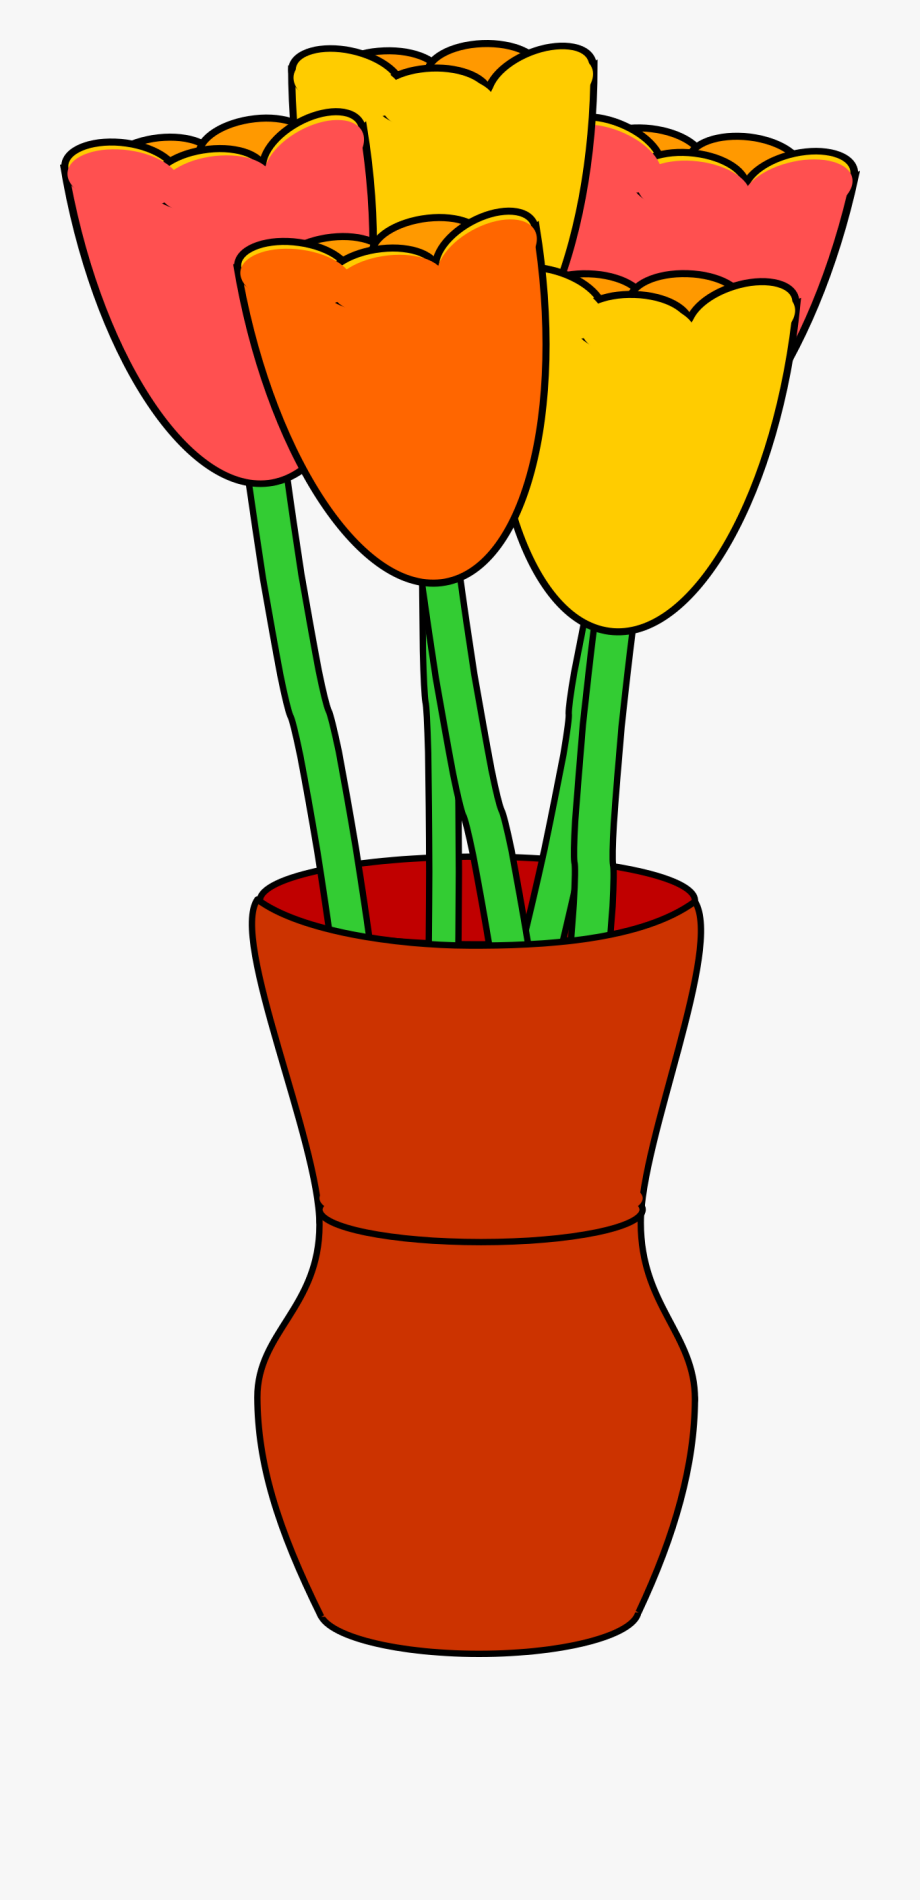 Vases with flowers clipart clip free Vase With Multicolored Tulips - Flower Vase Clip Art #163818 - Free ... clip free